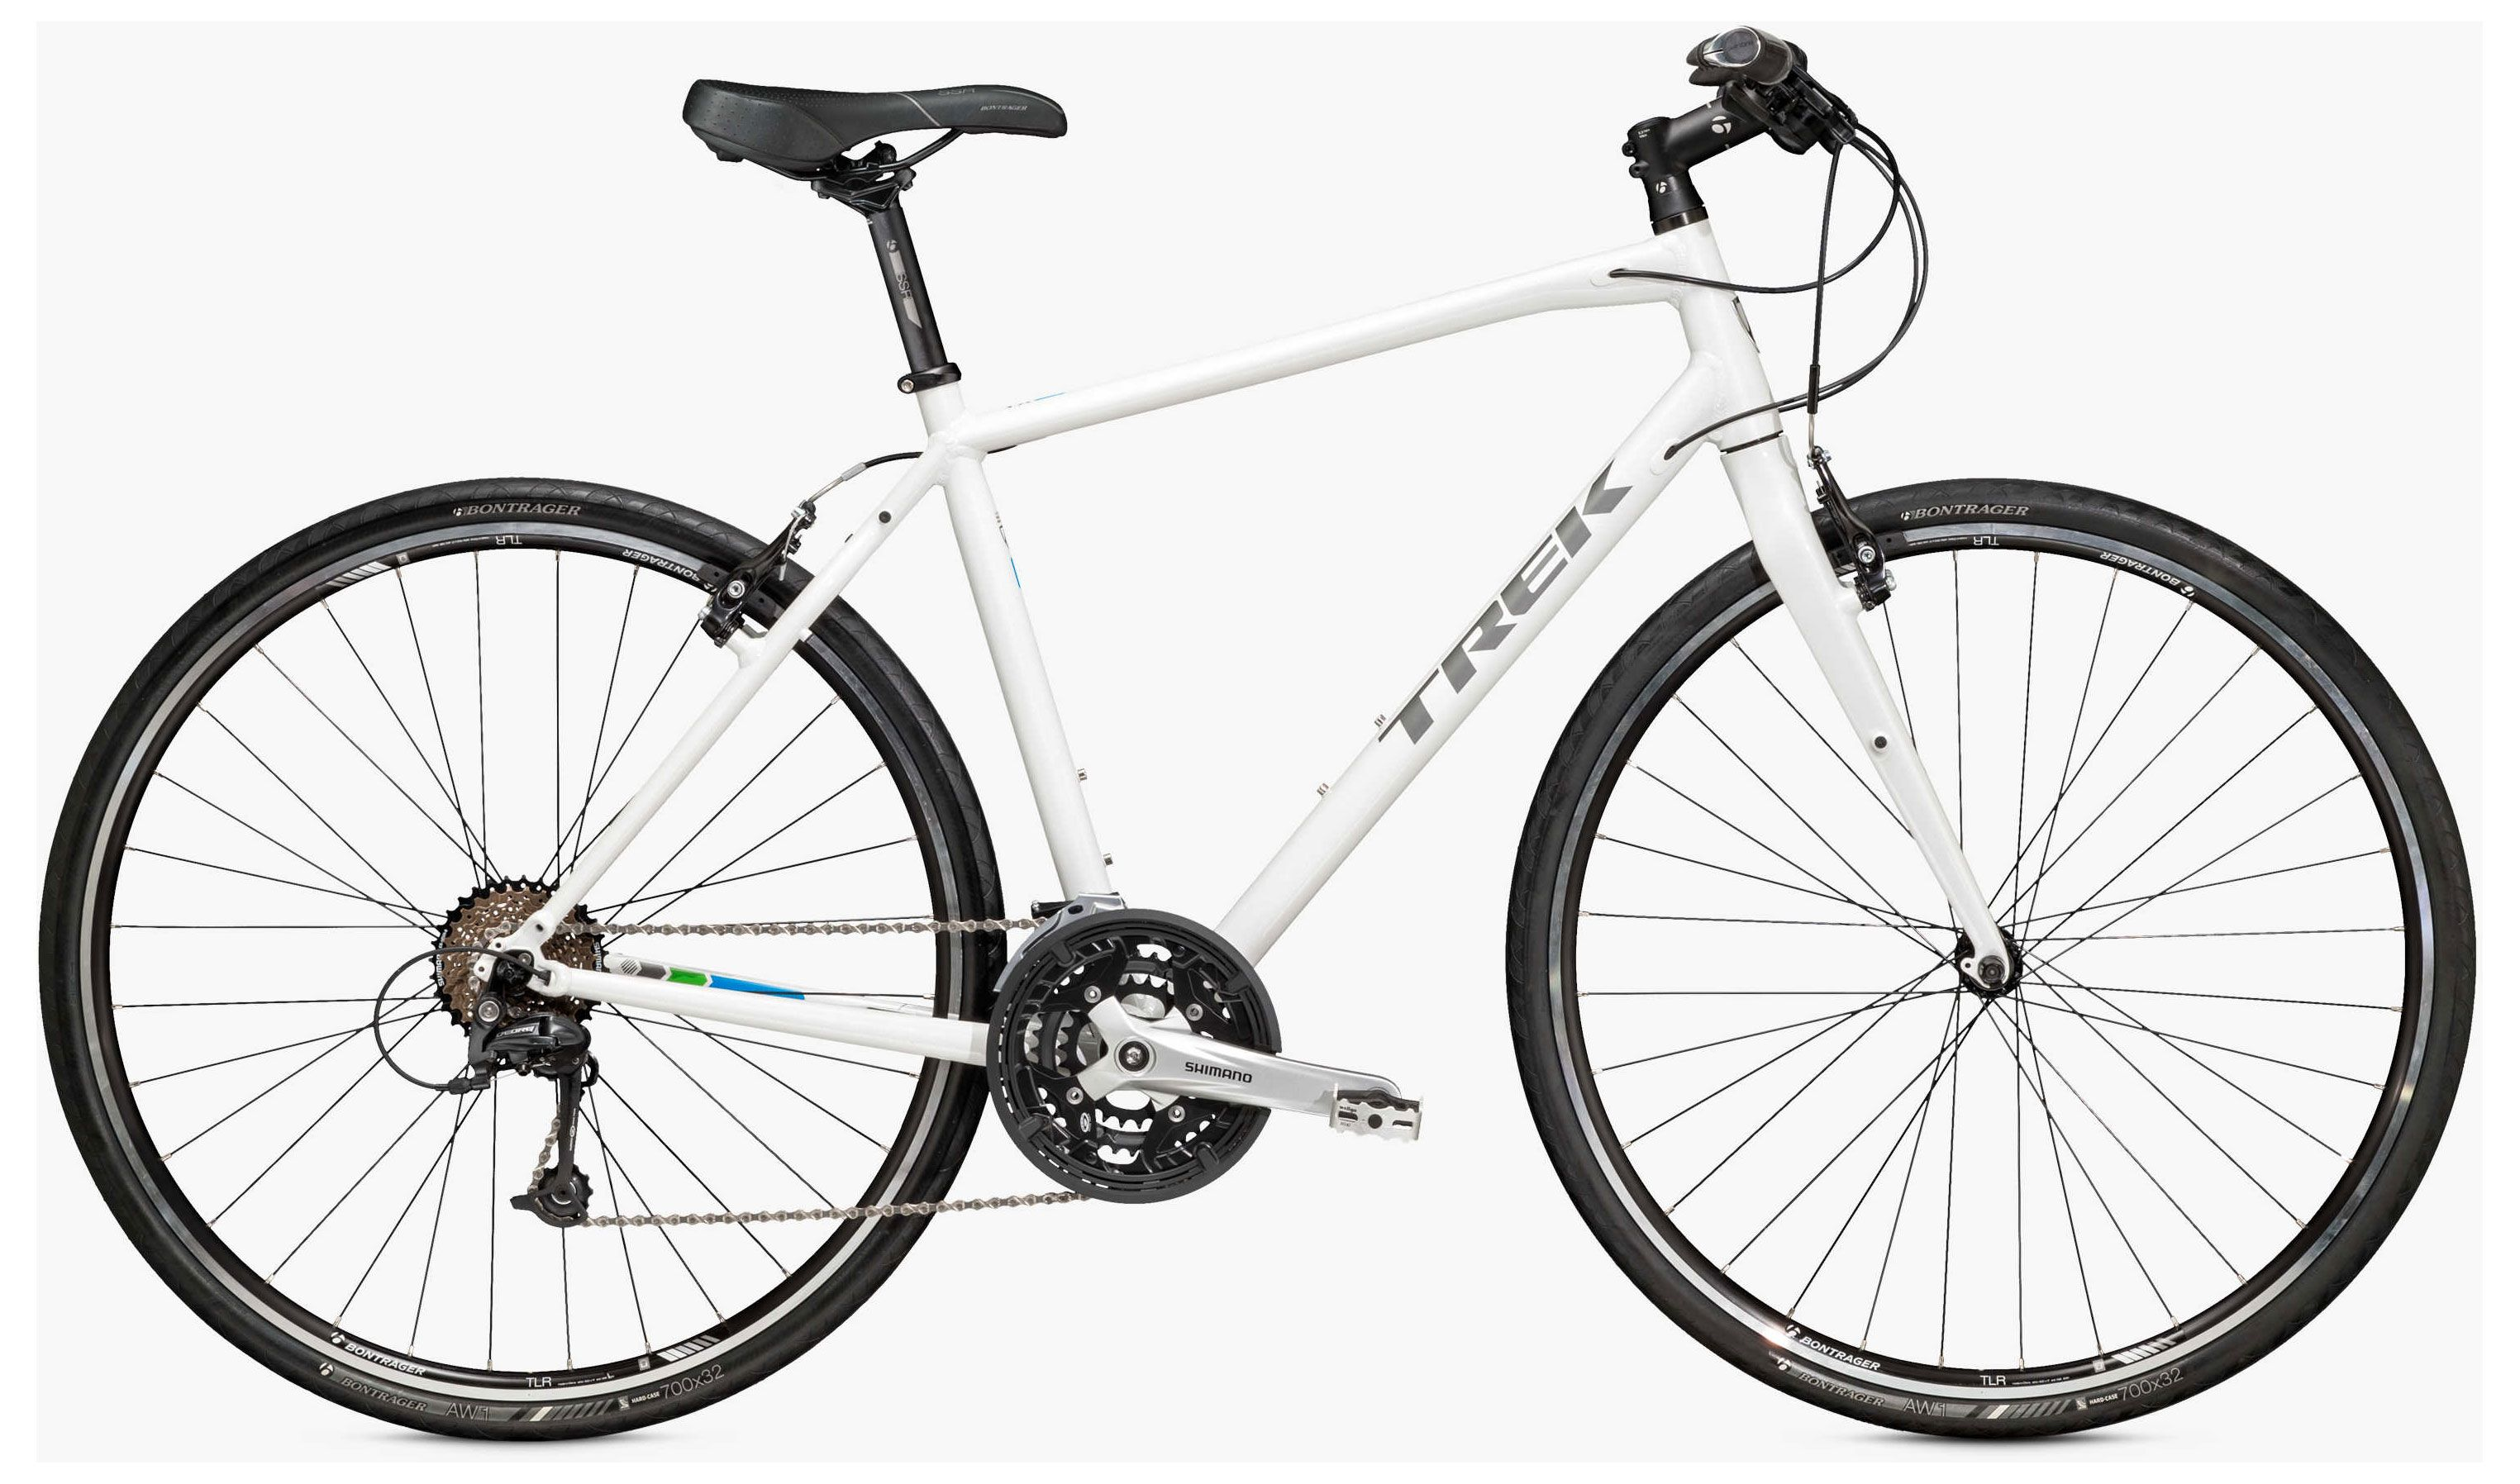 Велосипед Trek 7.4 FX 2016 велосипед trek superfly 24 disc 2016